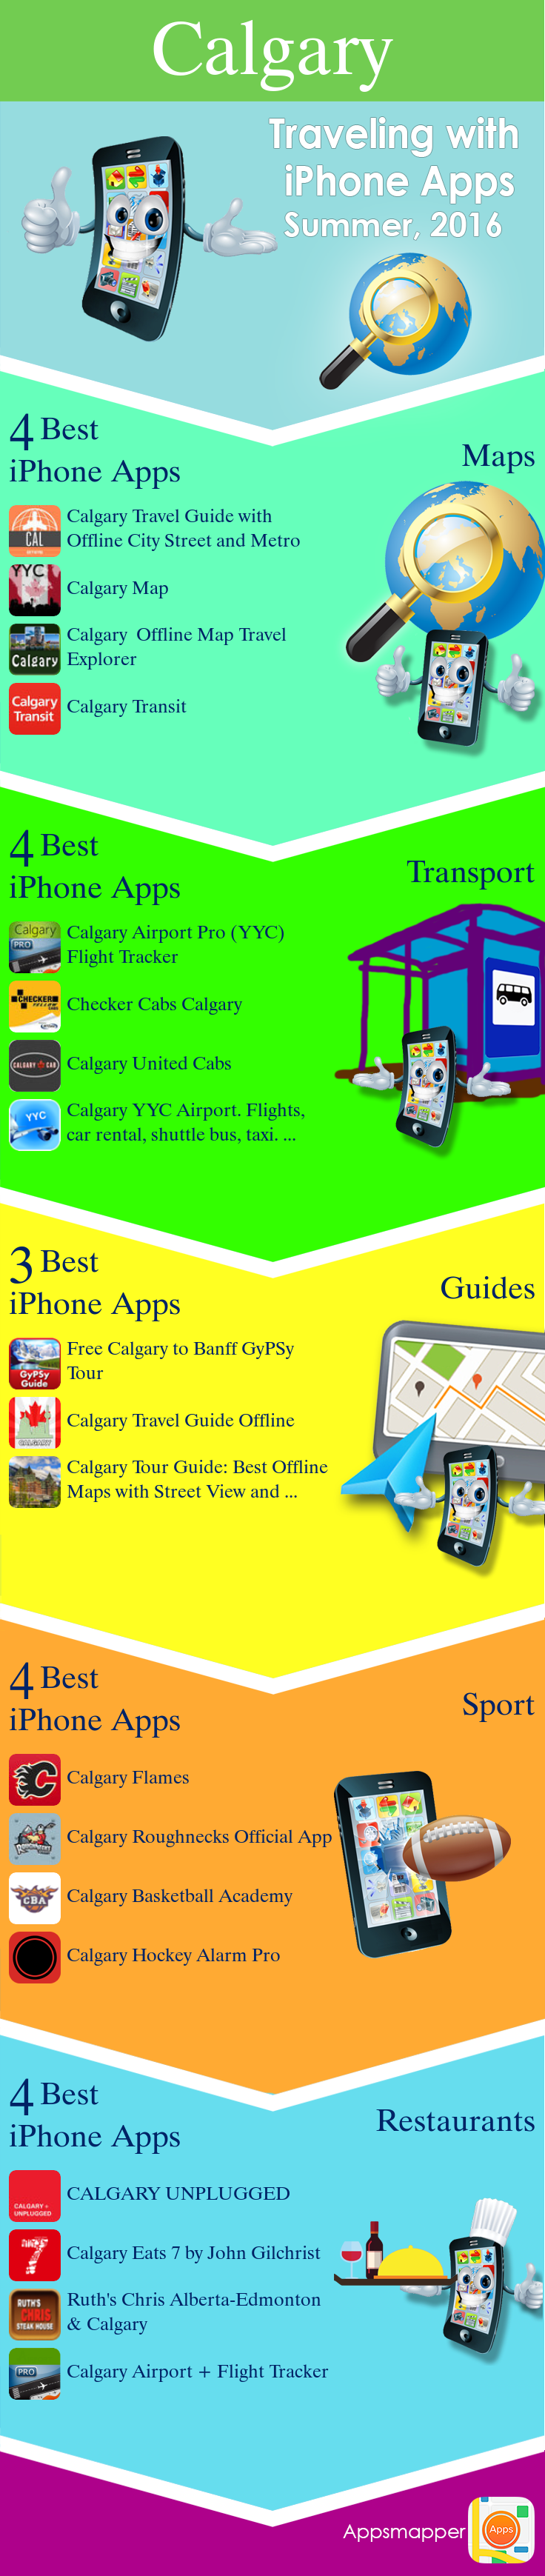 Calgary iPhone apps: Travel Guides, Maps, Transportation, Biking, Museums, Parking, Sport and apps for Students.